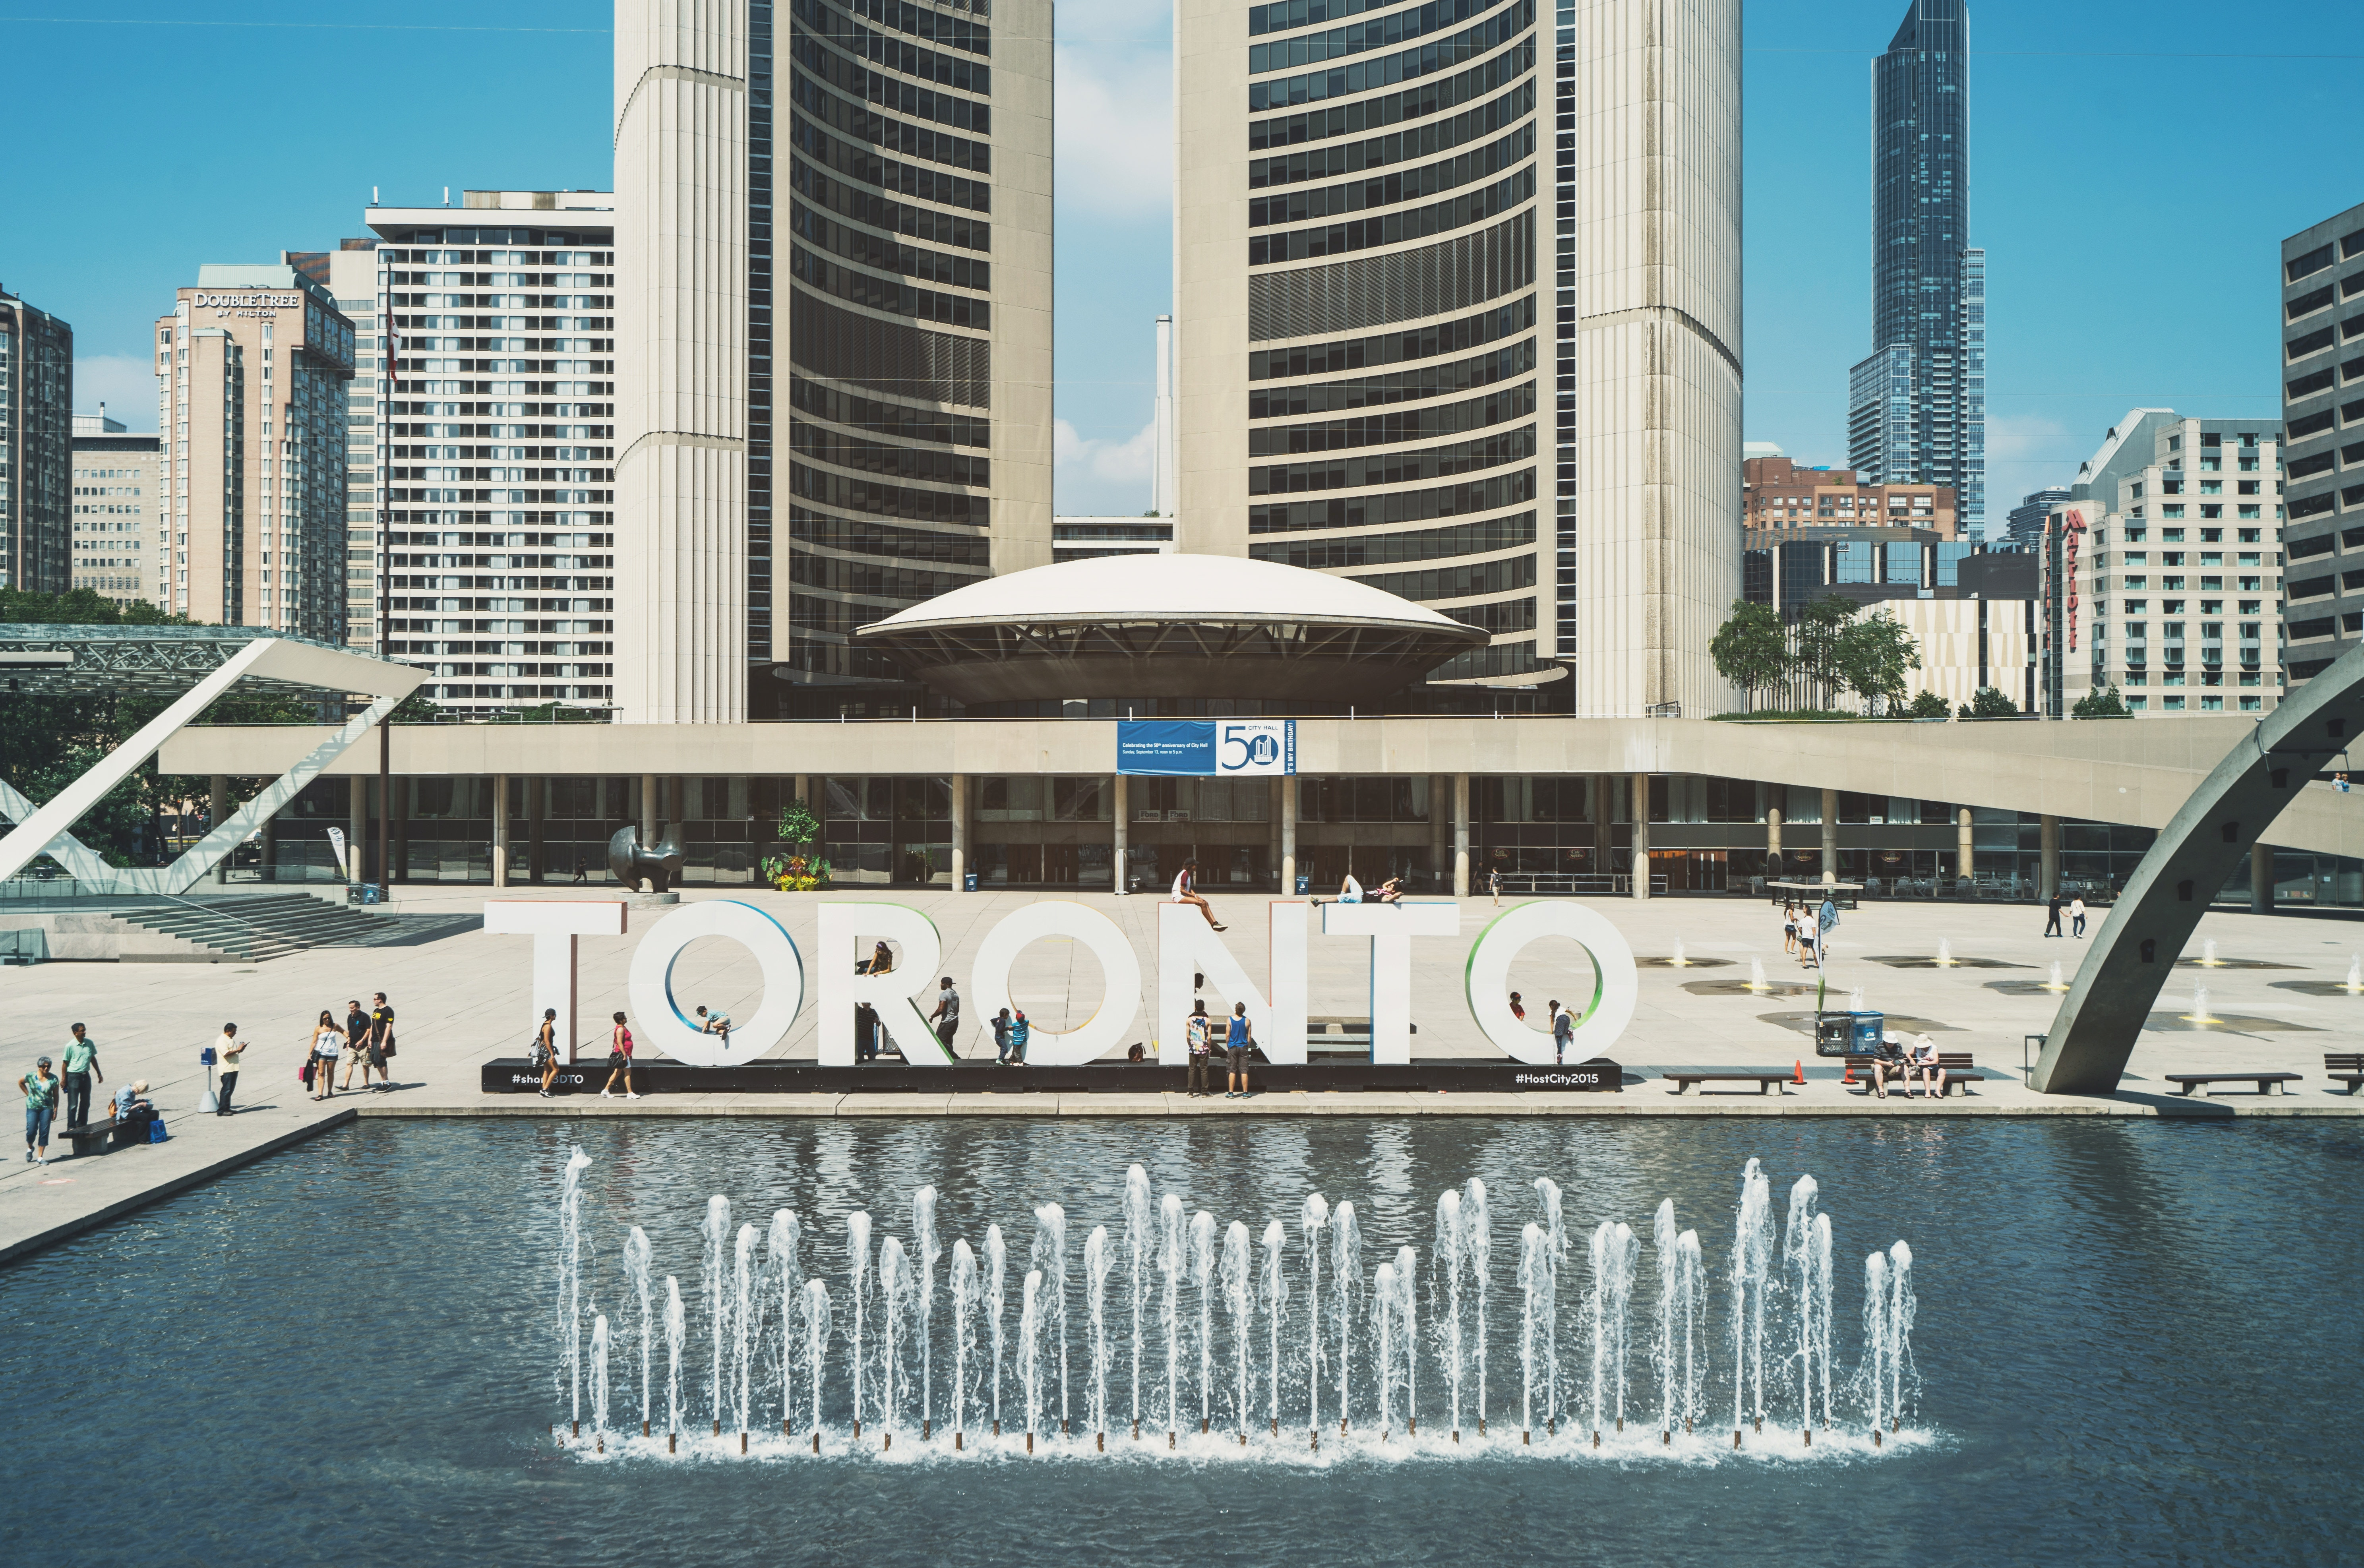 The Toronto sign behind a beautiful fountain piece